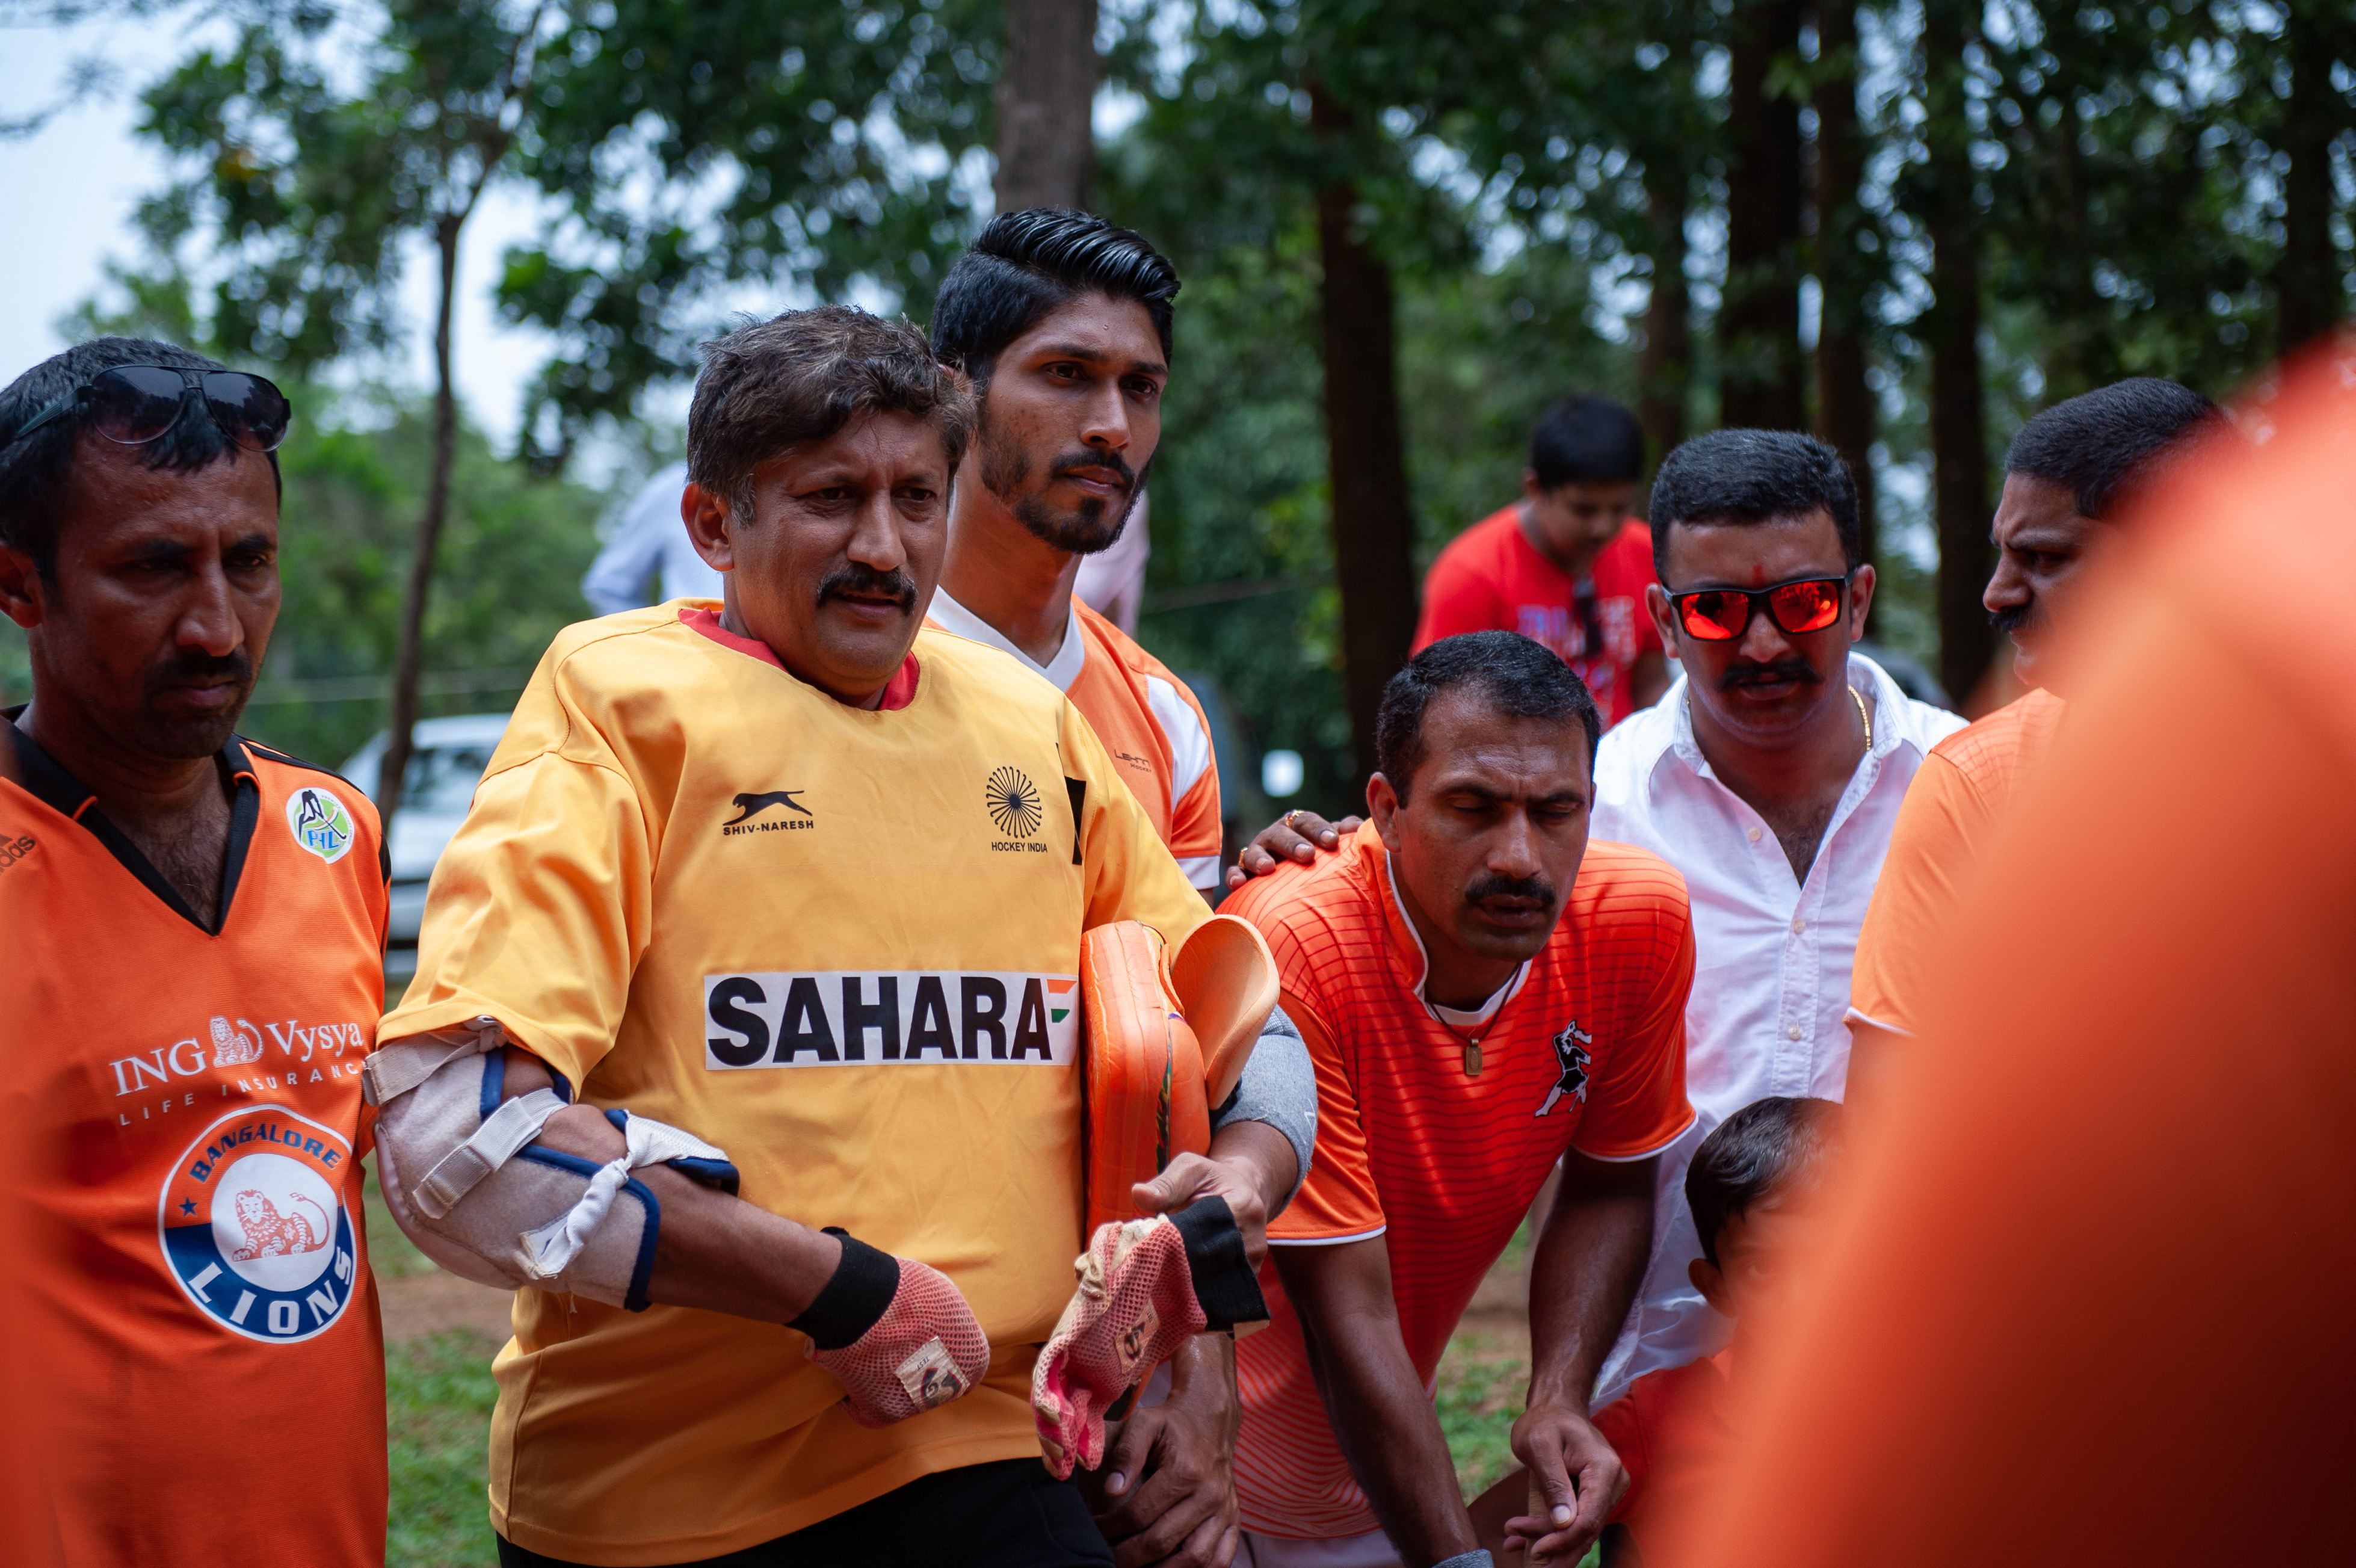 Dr. A B Subbaiah, goalkeeper of the Anjaparvanda, dressed in an India jersey, is seen giving a pep talk to his teammates before the start of the game.